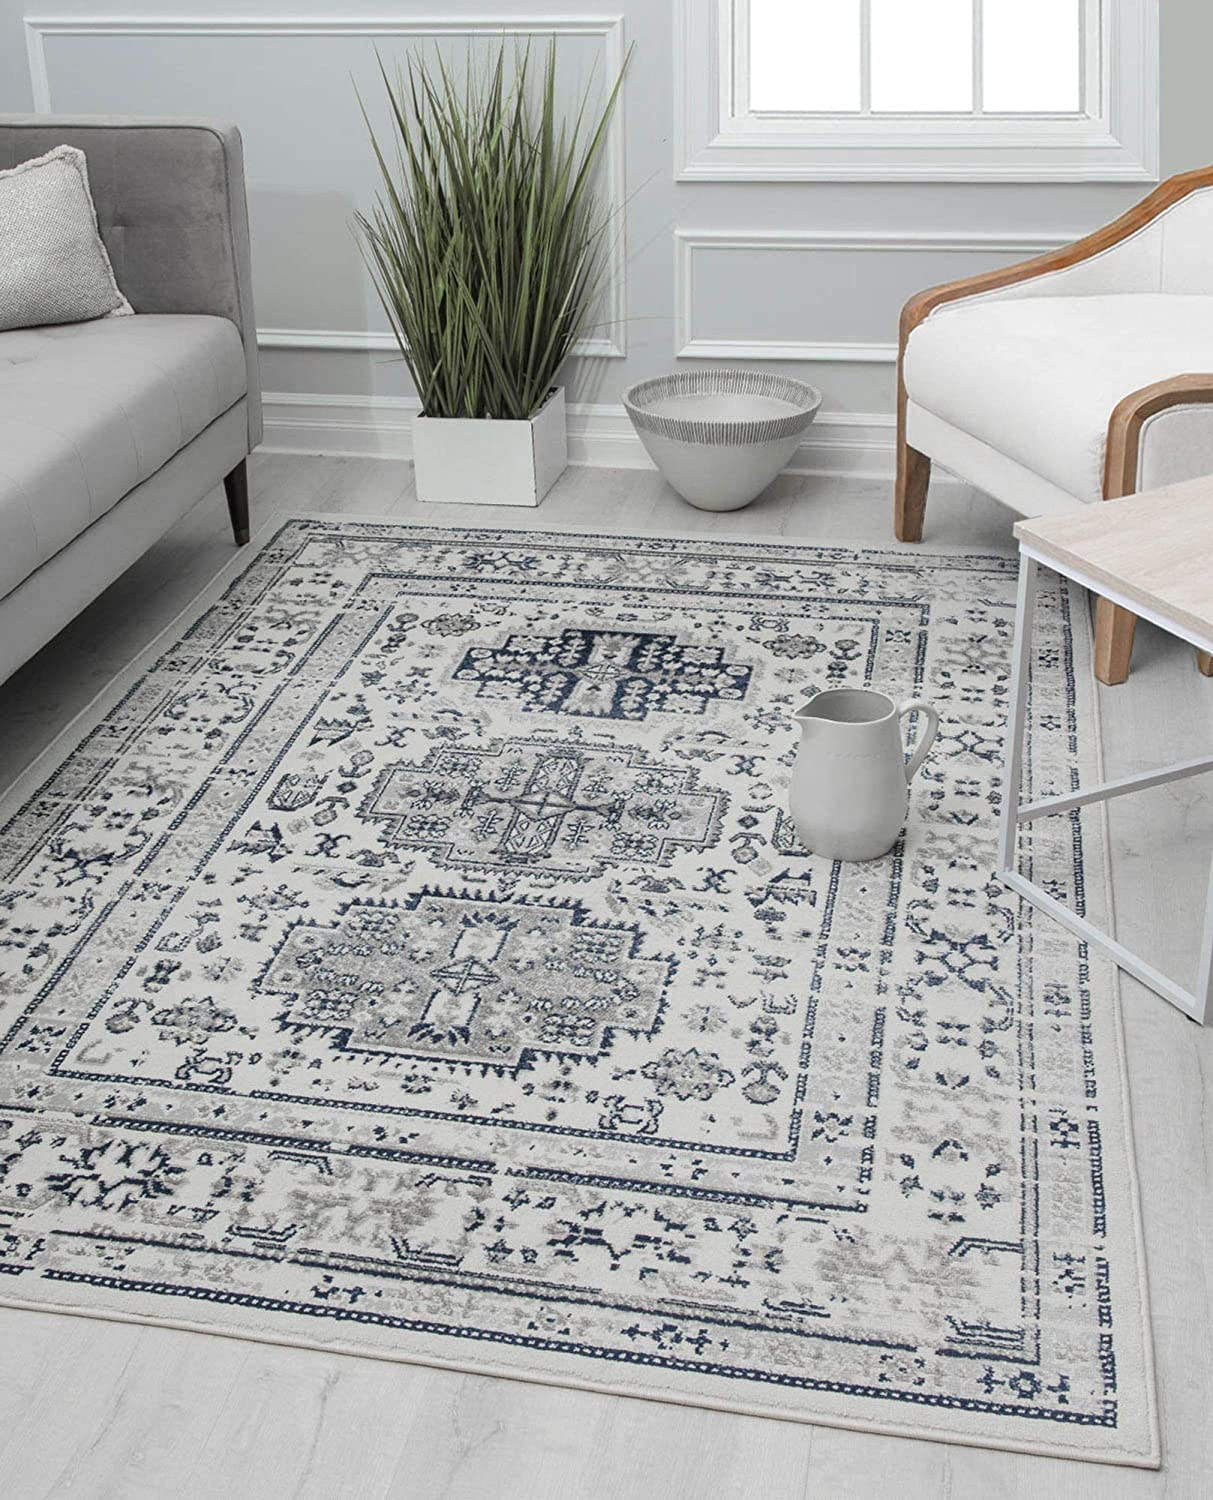 Rugs America Special sale item GL55A Area Rug Max 43% OFF 7' x Glacial 5'3